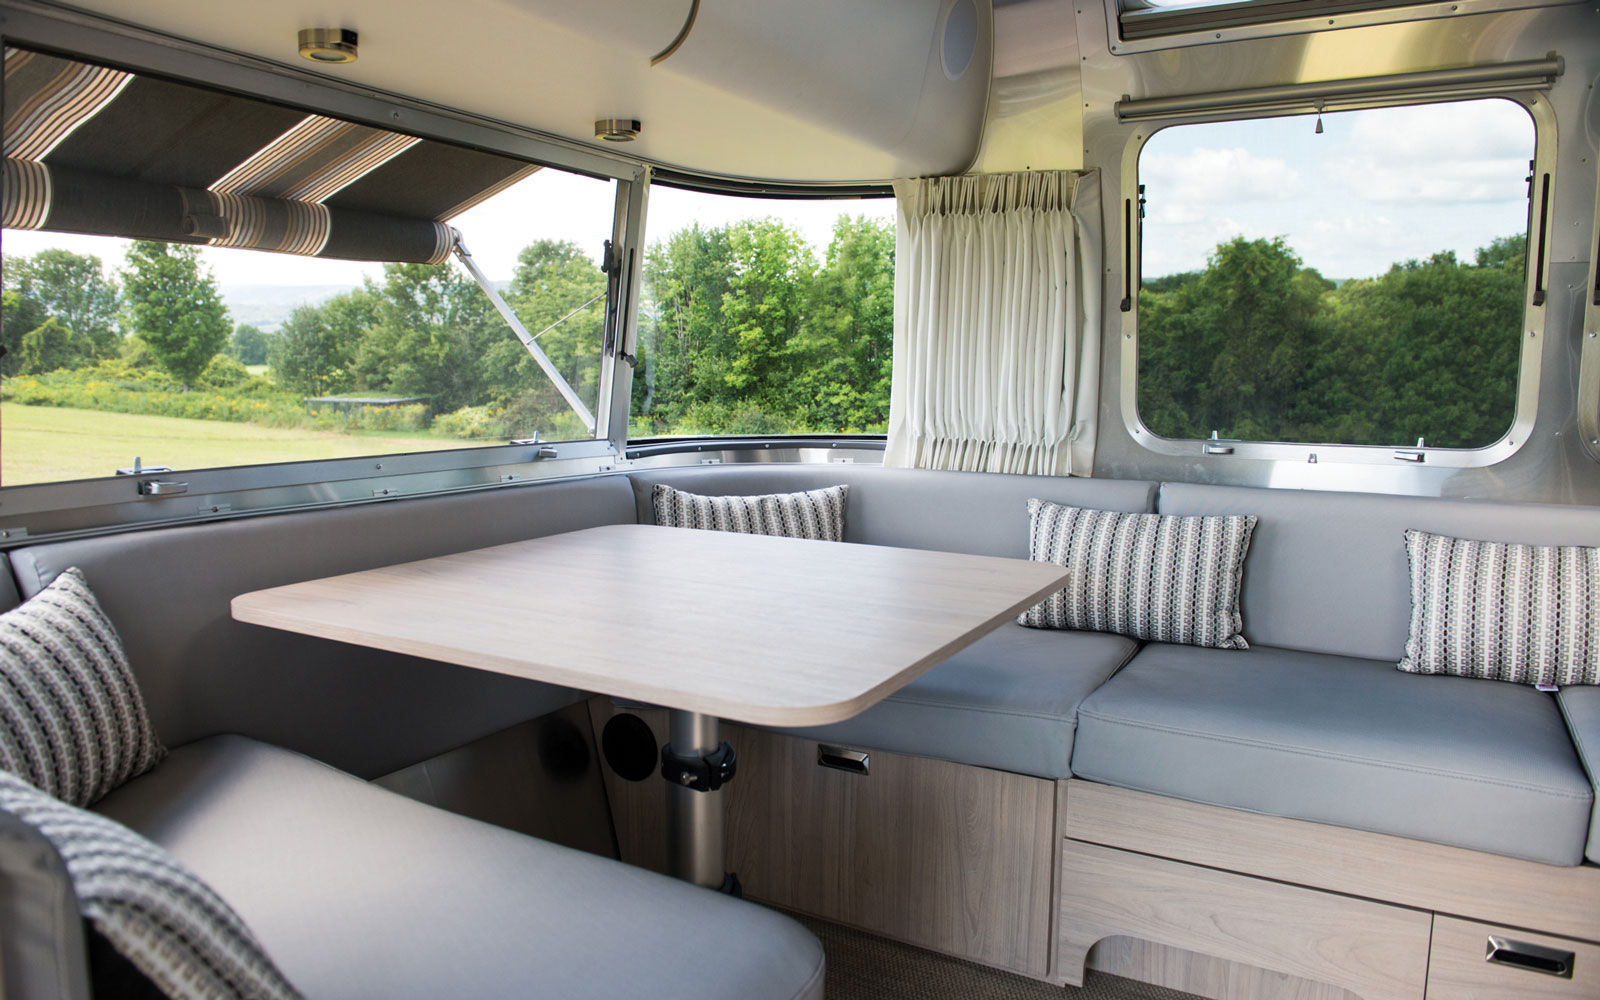 Airstream S Iconic Trailer Just Got A Luxurious Upgrade